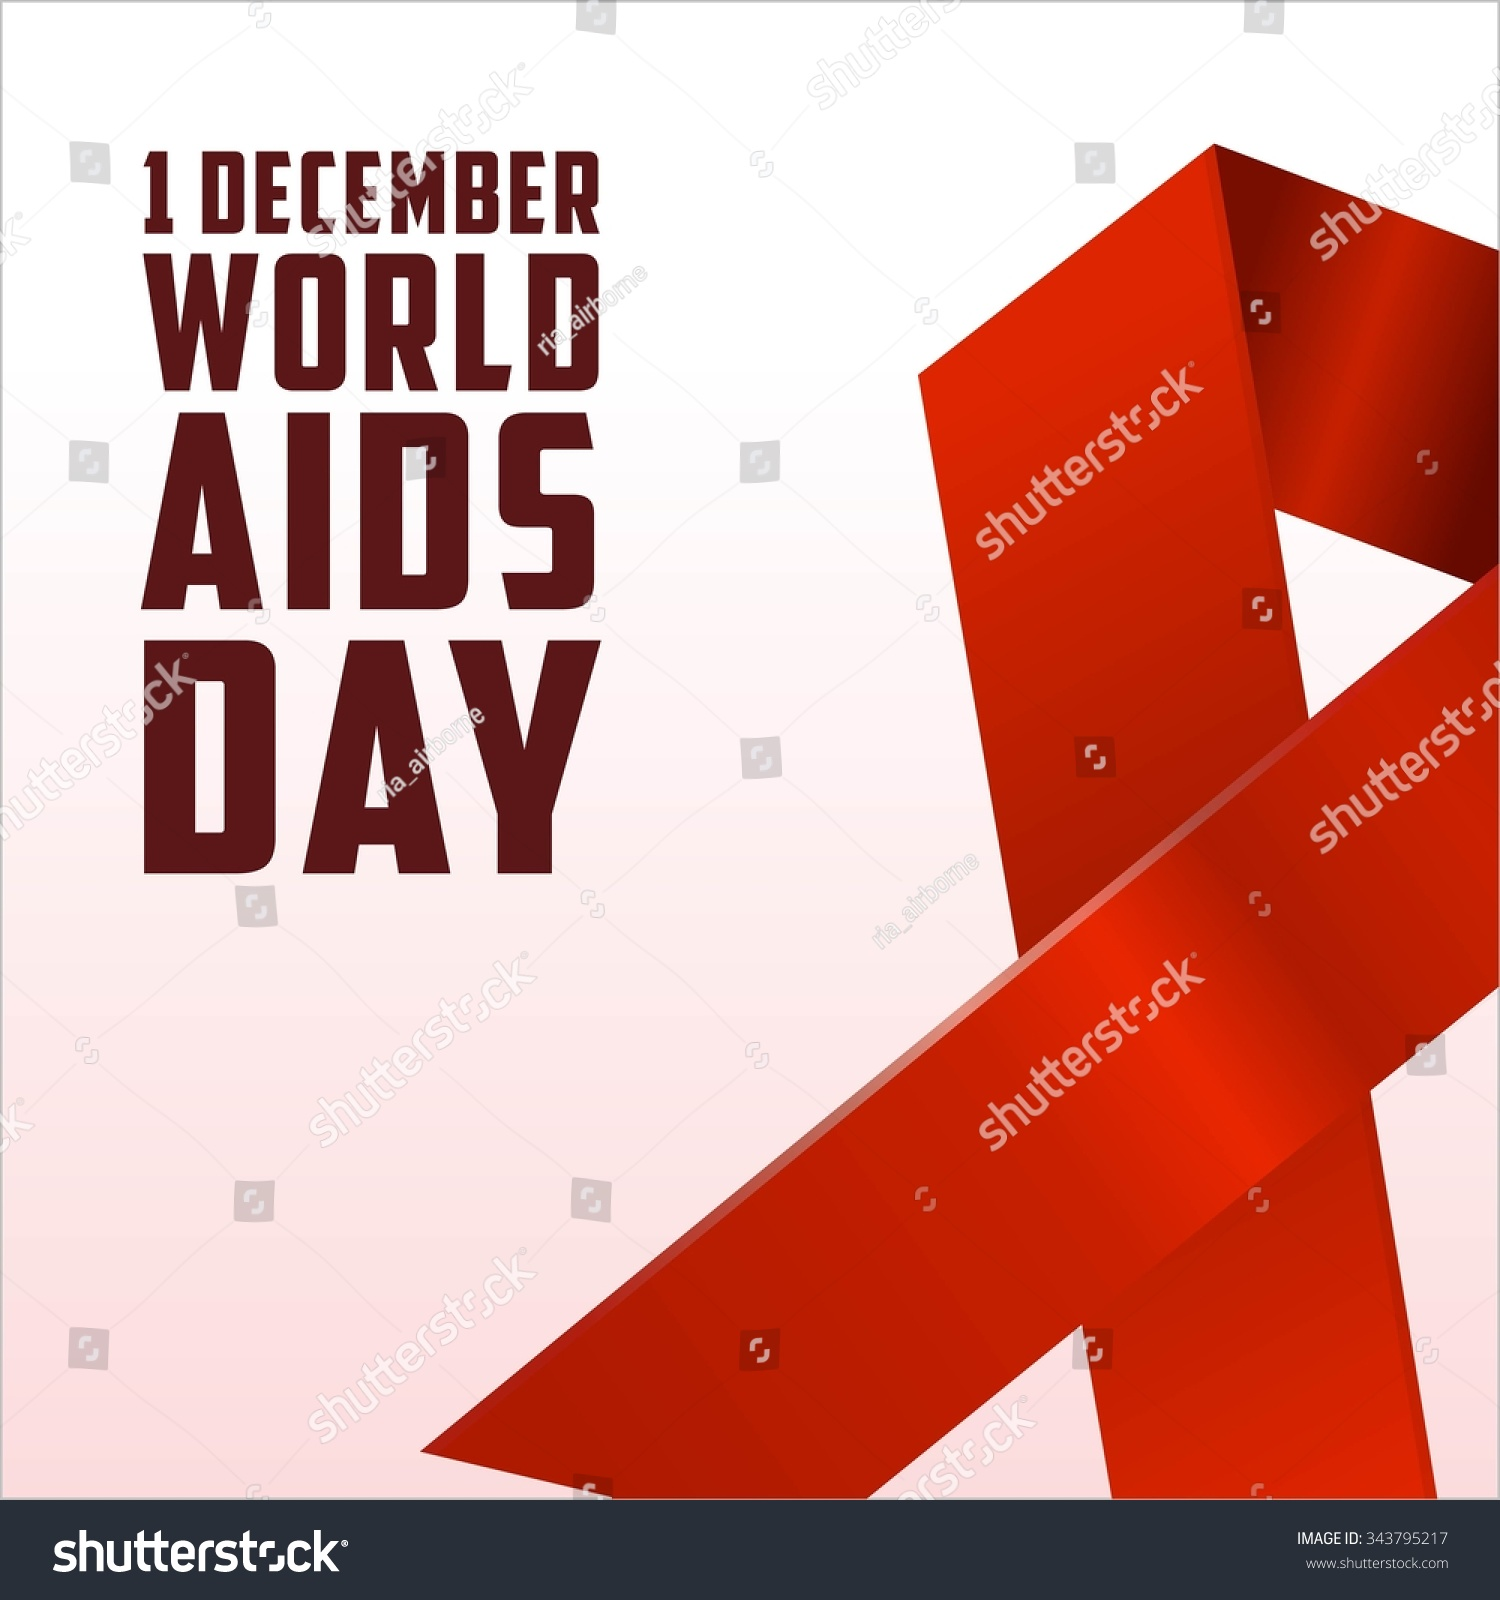 Inspirational Message Of The Day World Aids Day Poster Quotes Inspirational Stock Vector 343795217